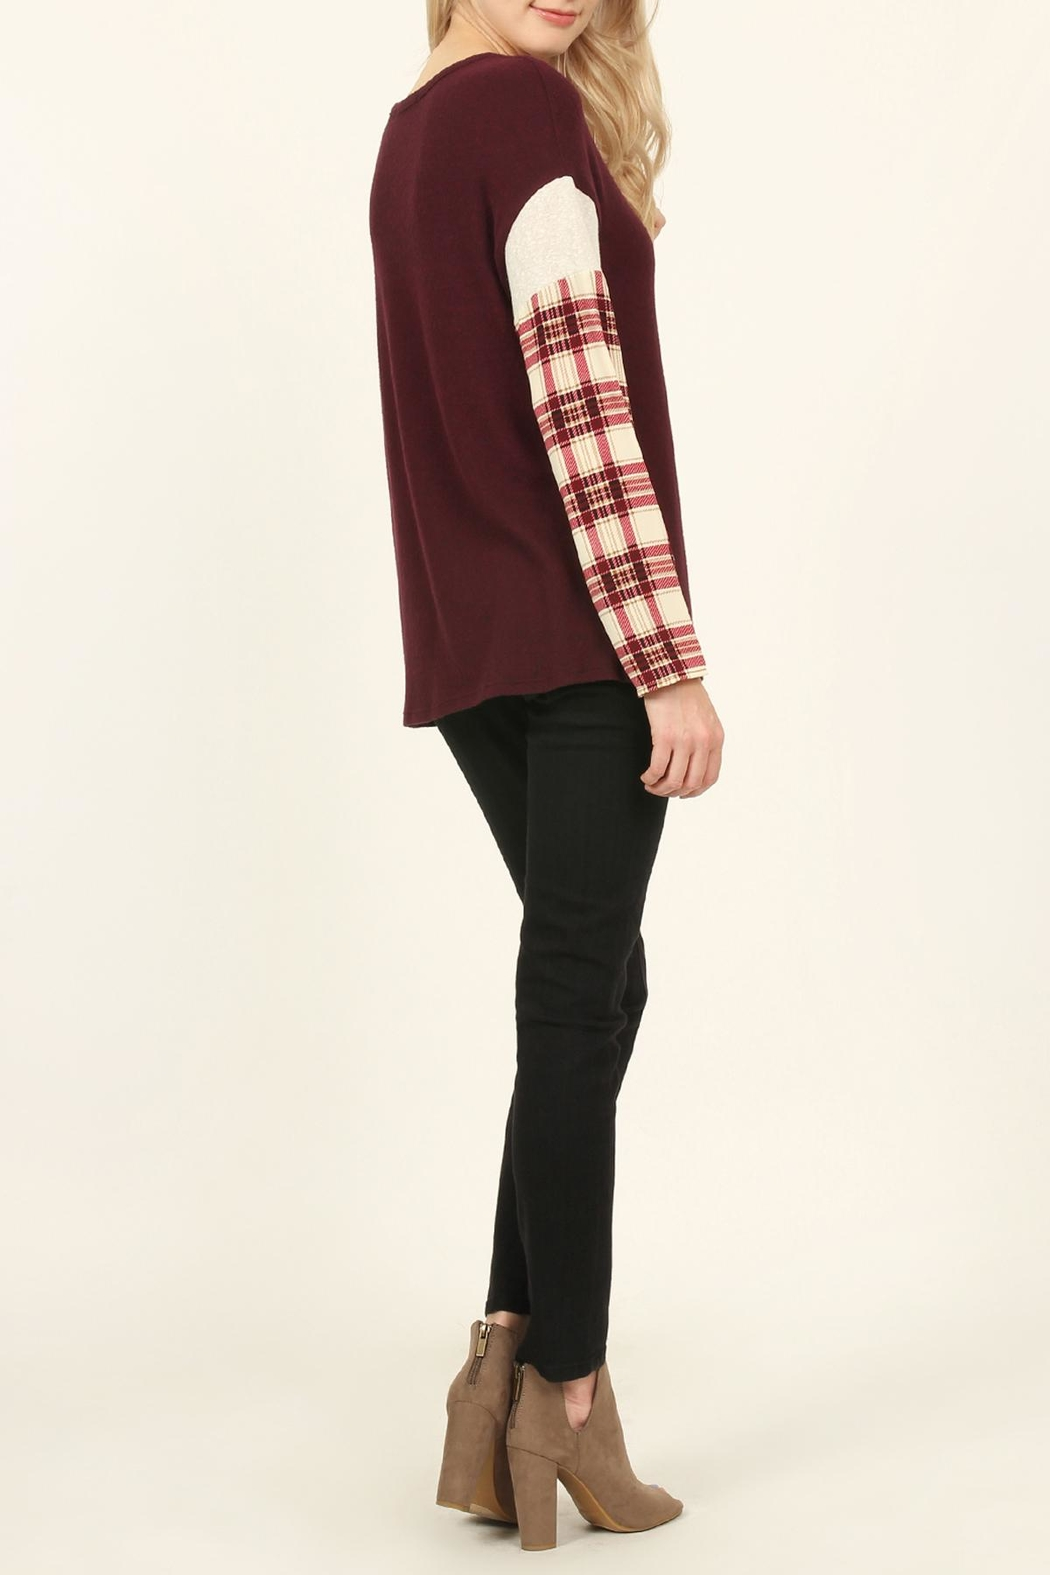 Riah Fashion Plaid-Sleeve Dropped Shoulder-Sweater - Front Full Image